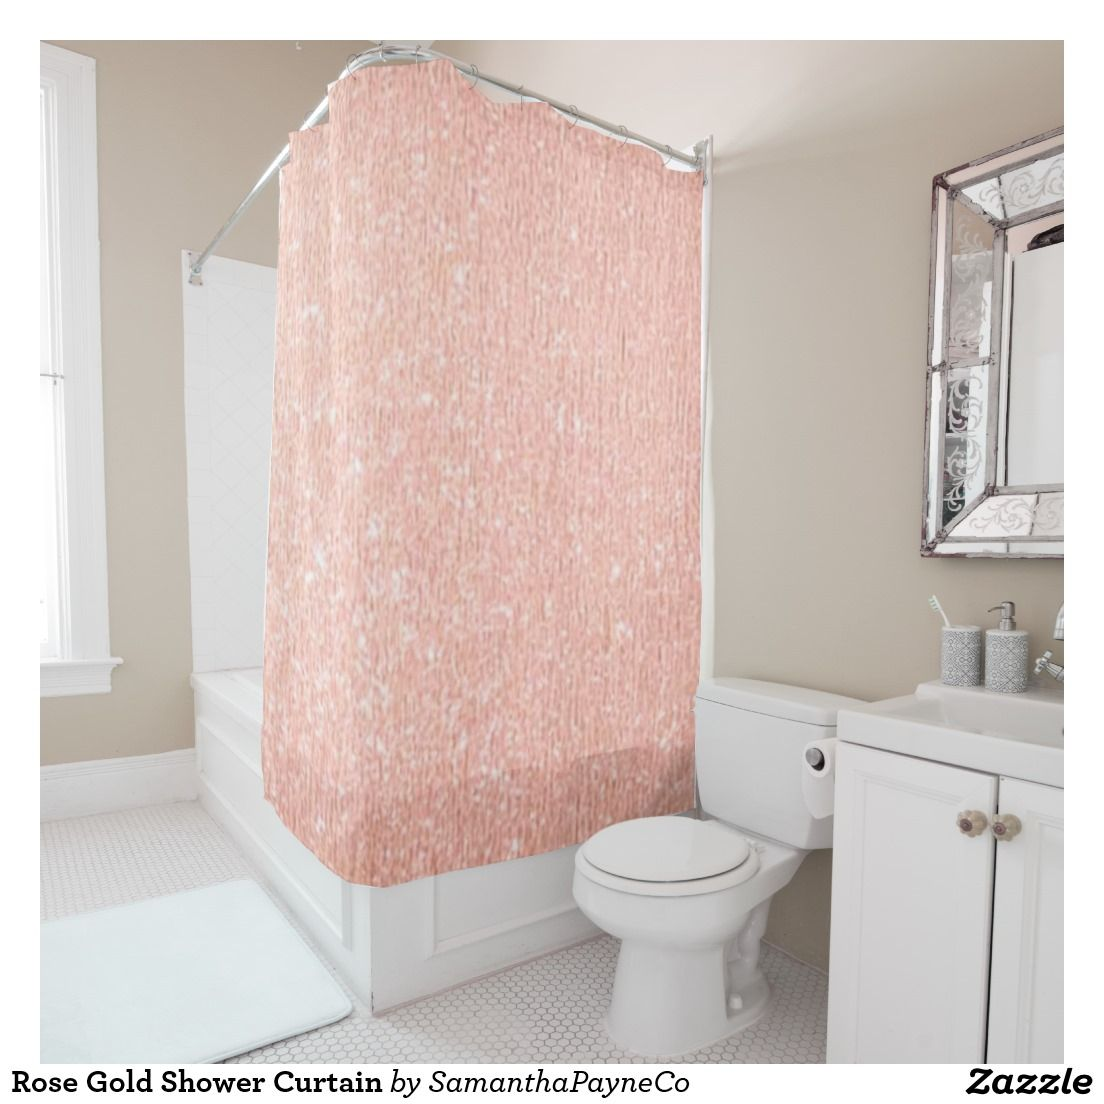 Rose Gold Shower Curtain | Gold shower curtain, Decorating and Gold